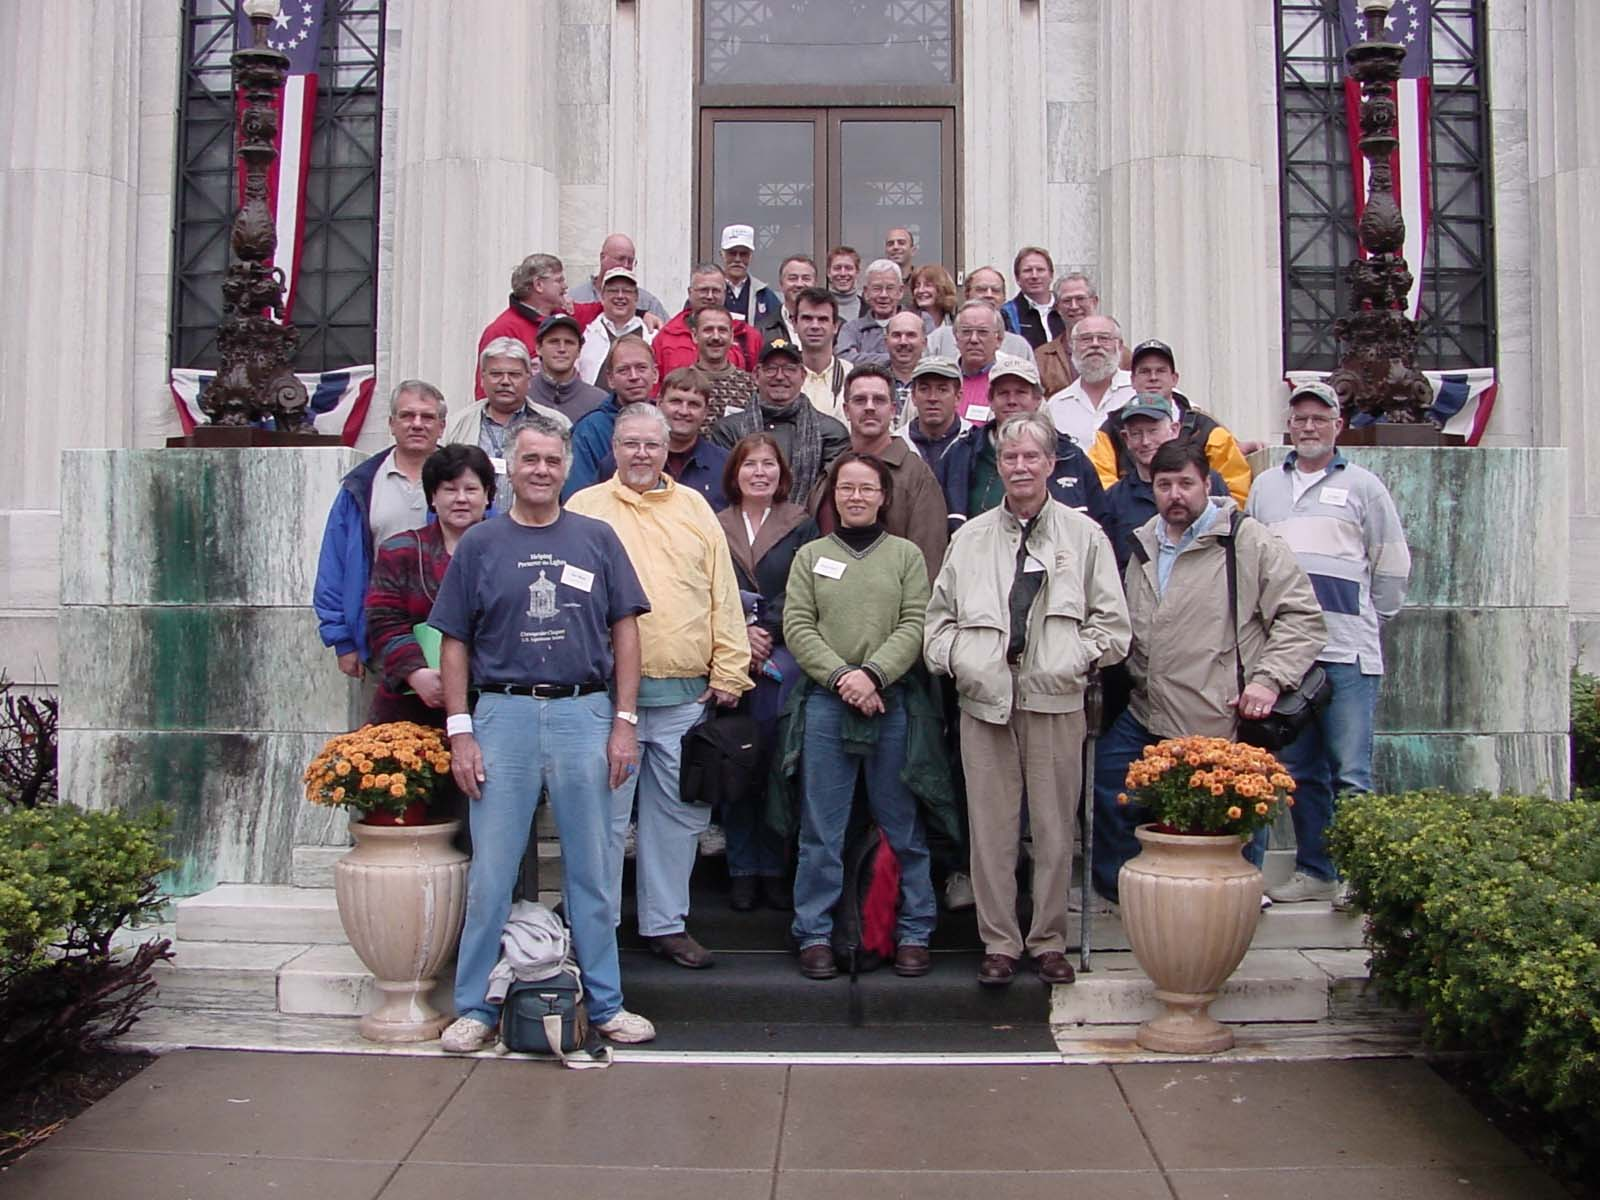 Participants in the 2002 lens workshop in Buffalo, New York